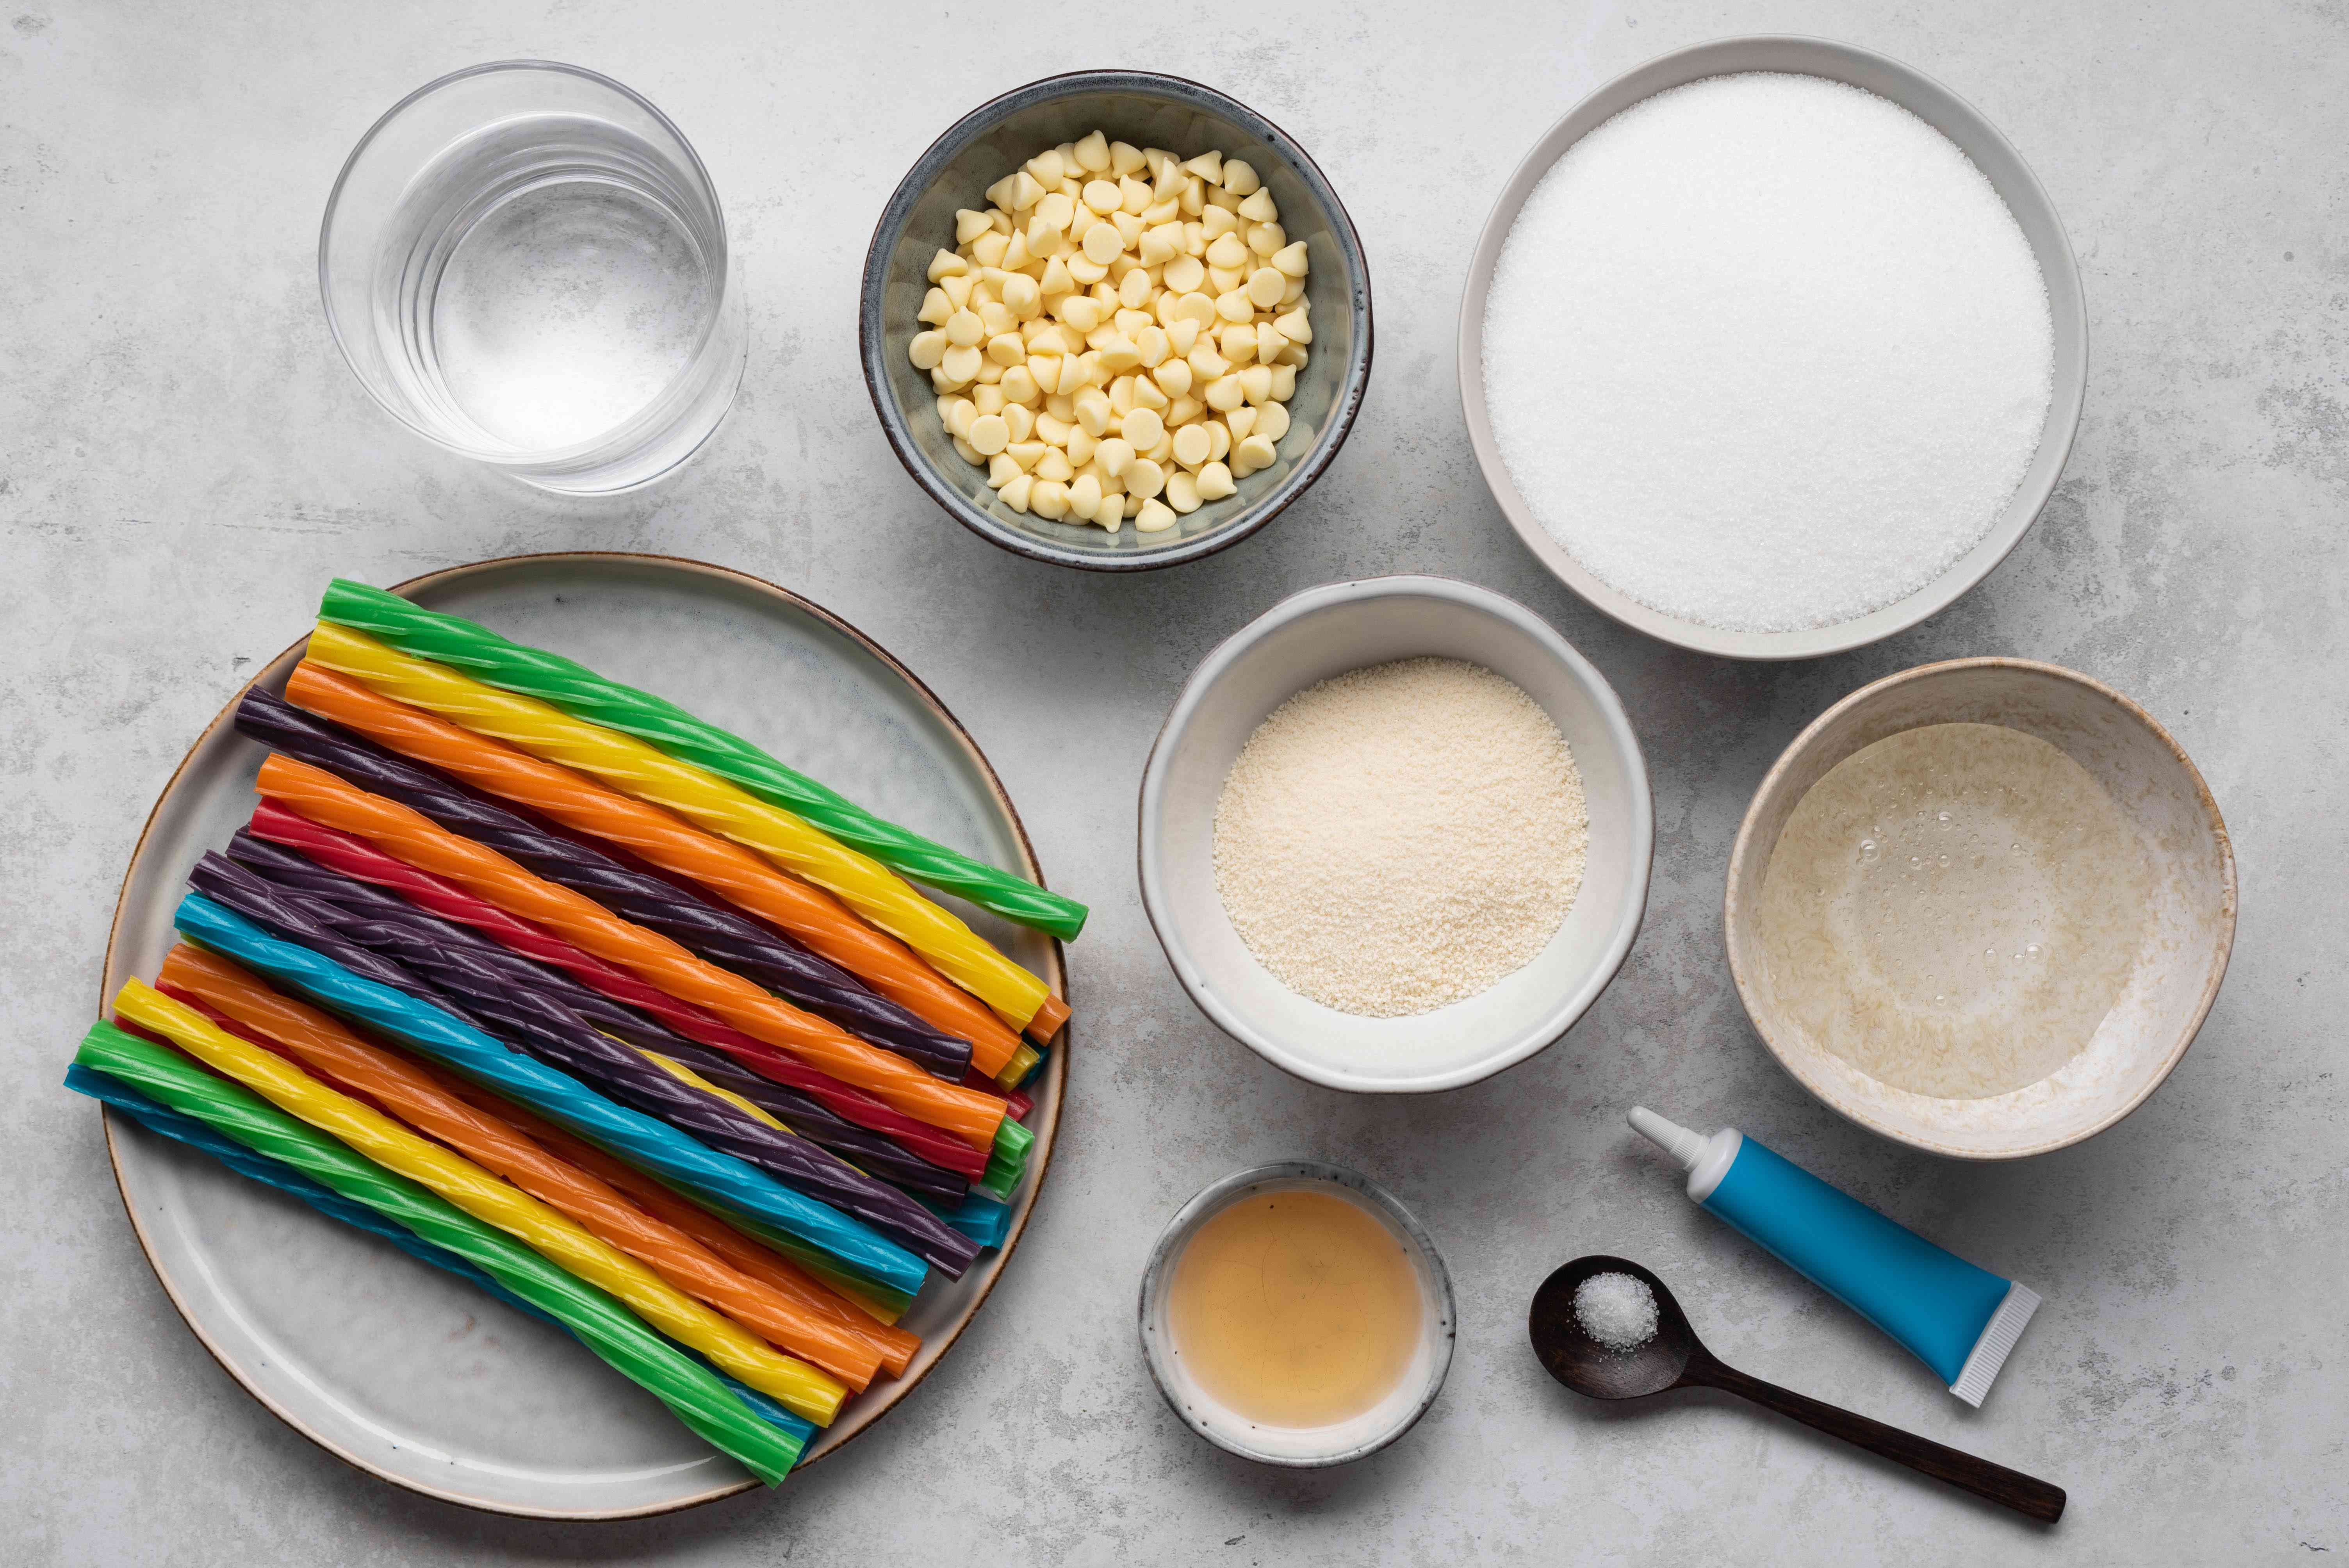 Marshmallow Clouds ingredients